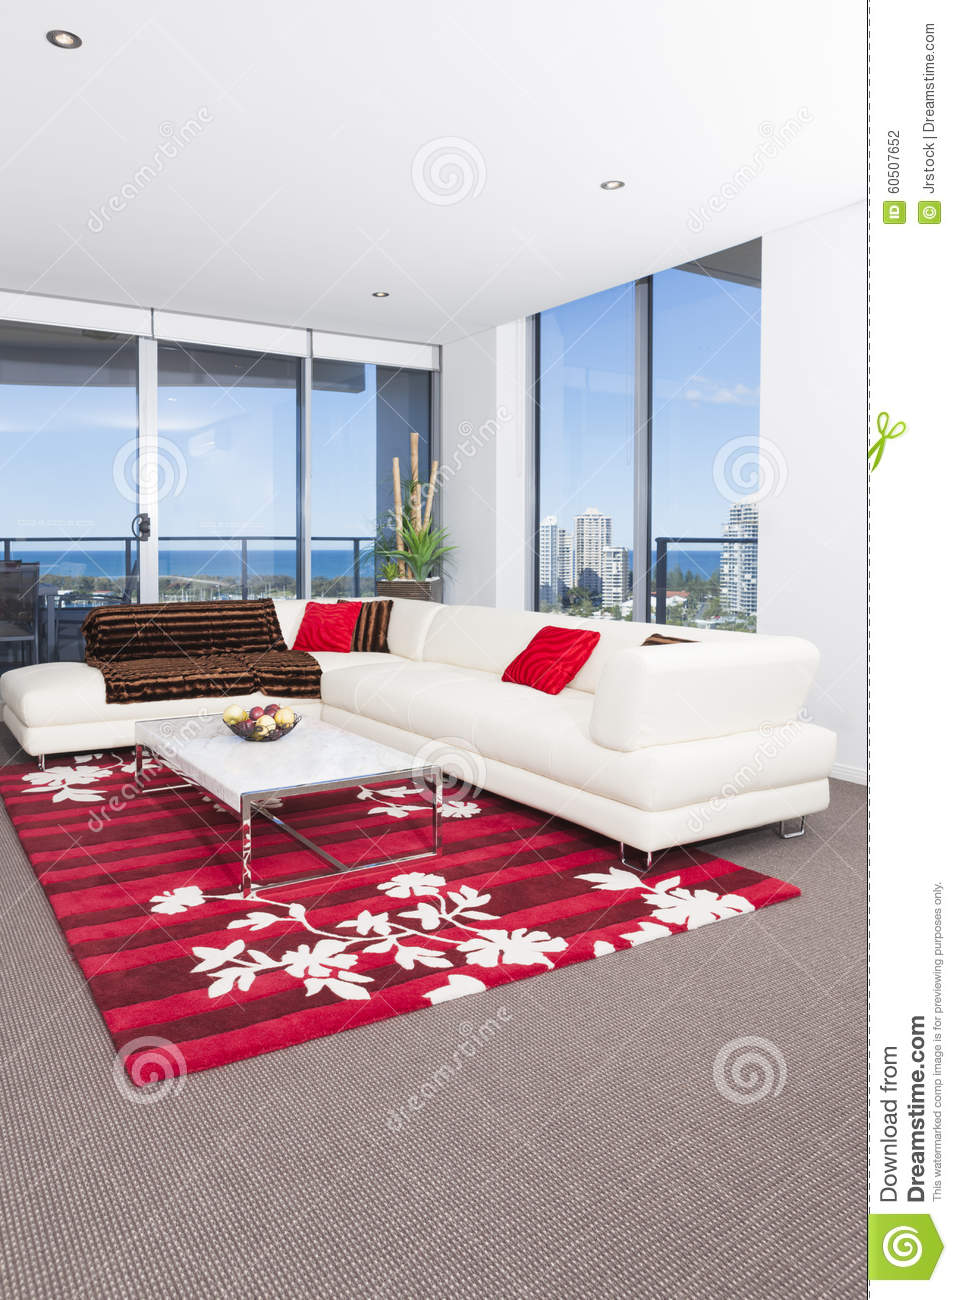 spacious living room with a red carpet stock photo image of carpet